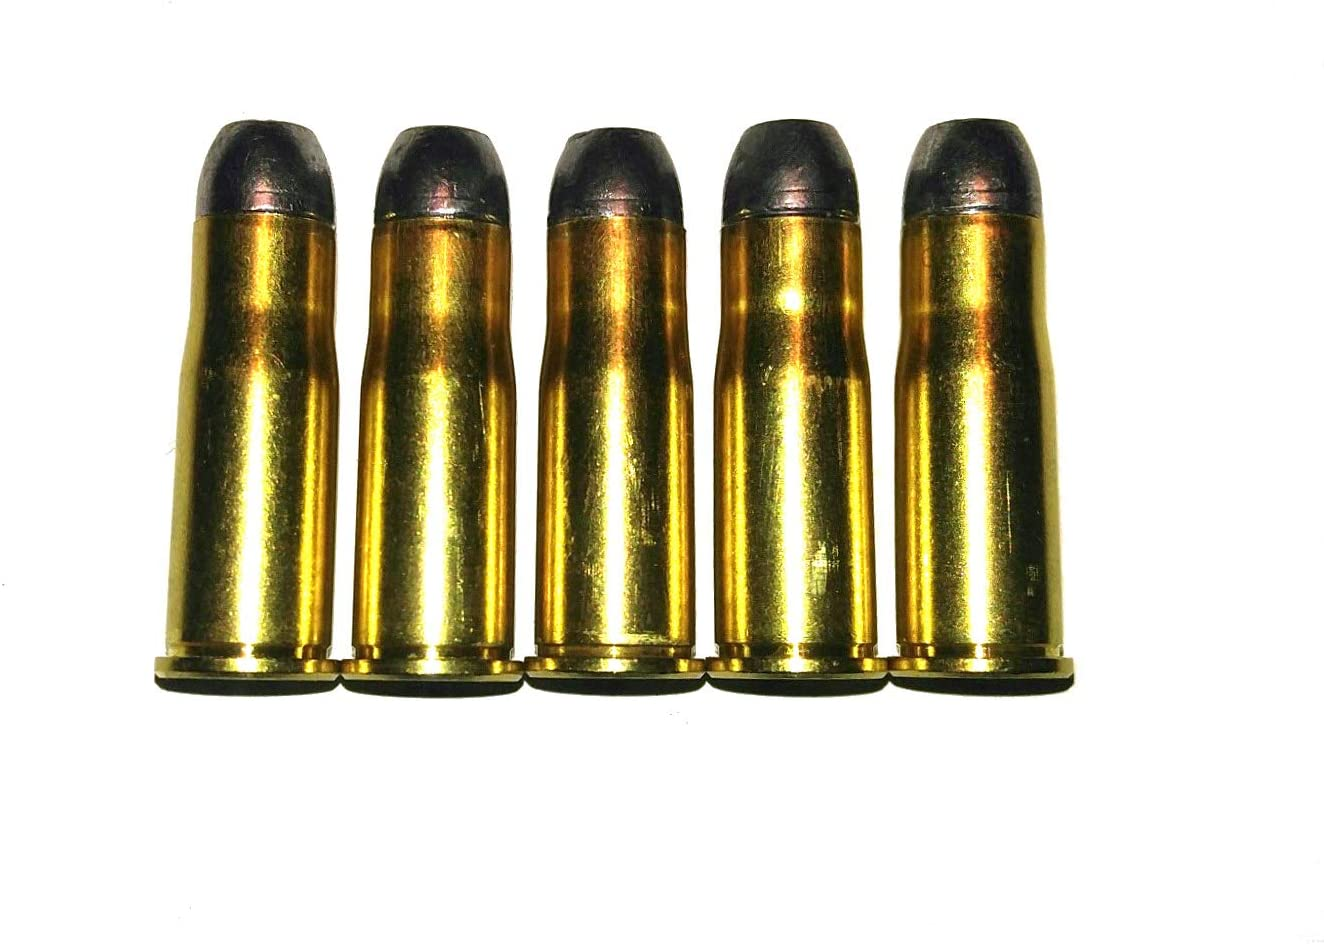 R&R Snaps 38-40 Winchester Snap Caps Cowboy Display WCF Win Western 1873 .38-40 Wild West